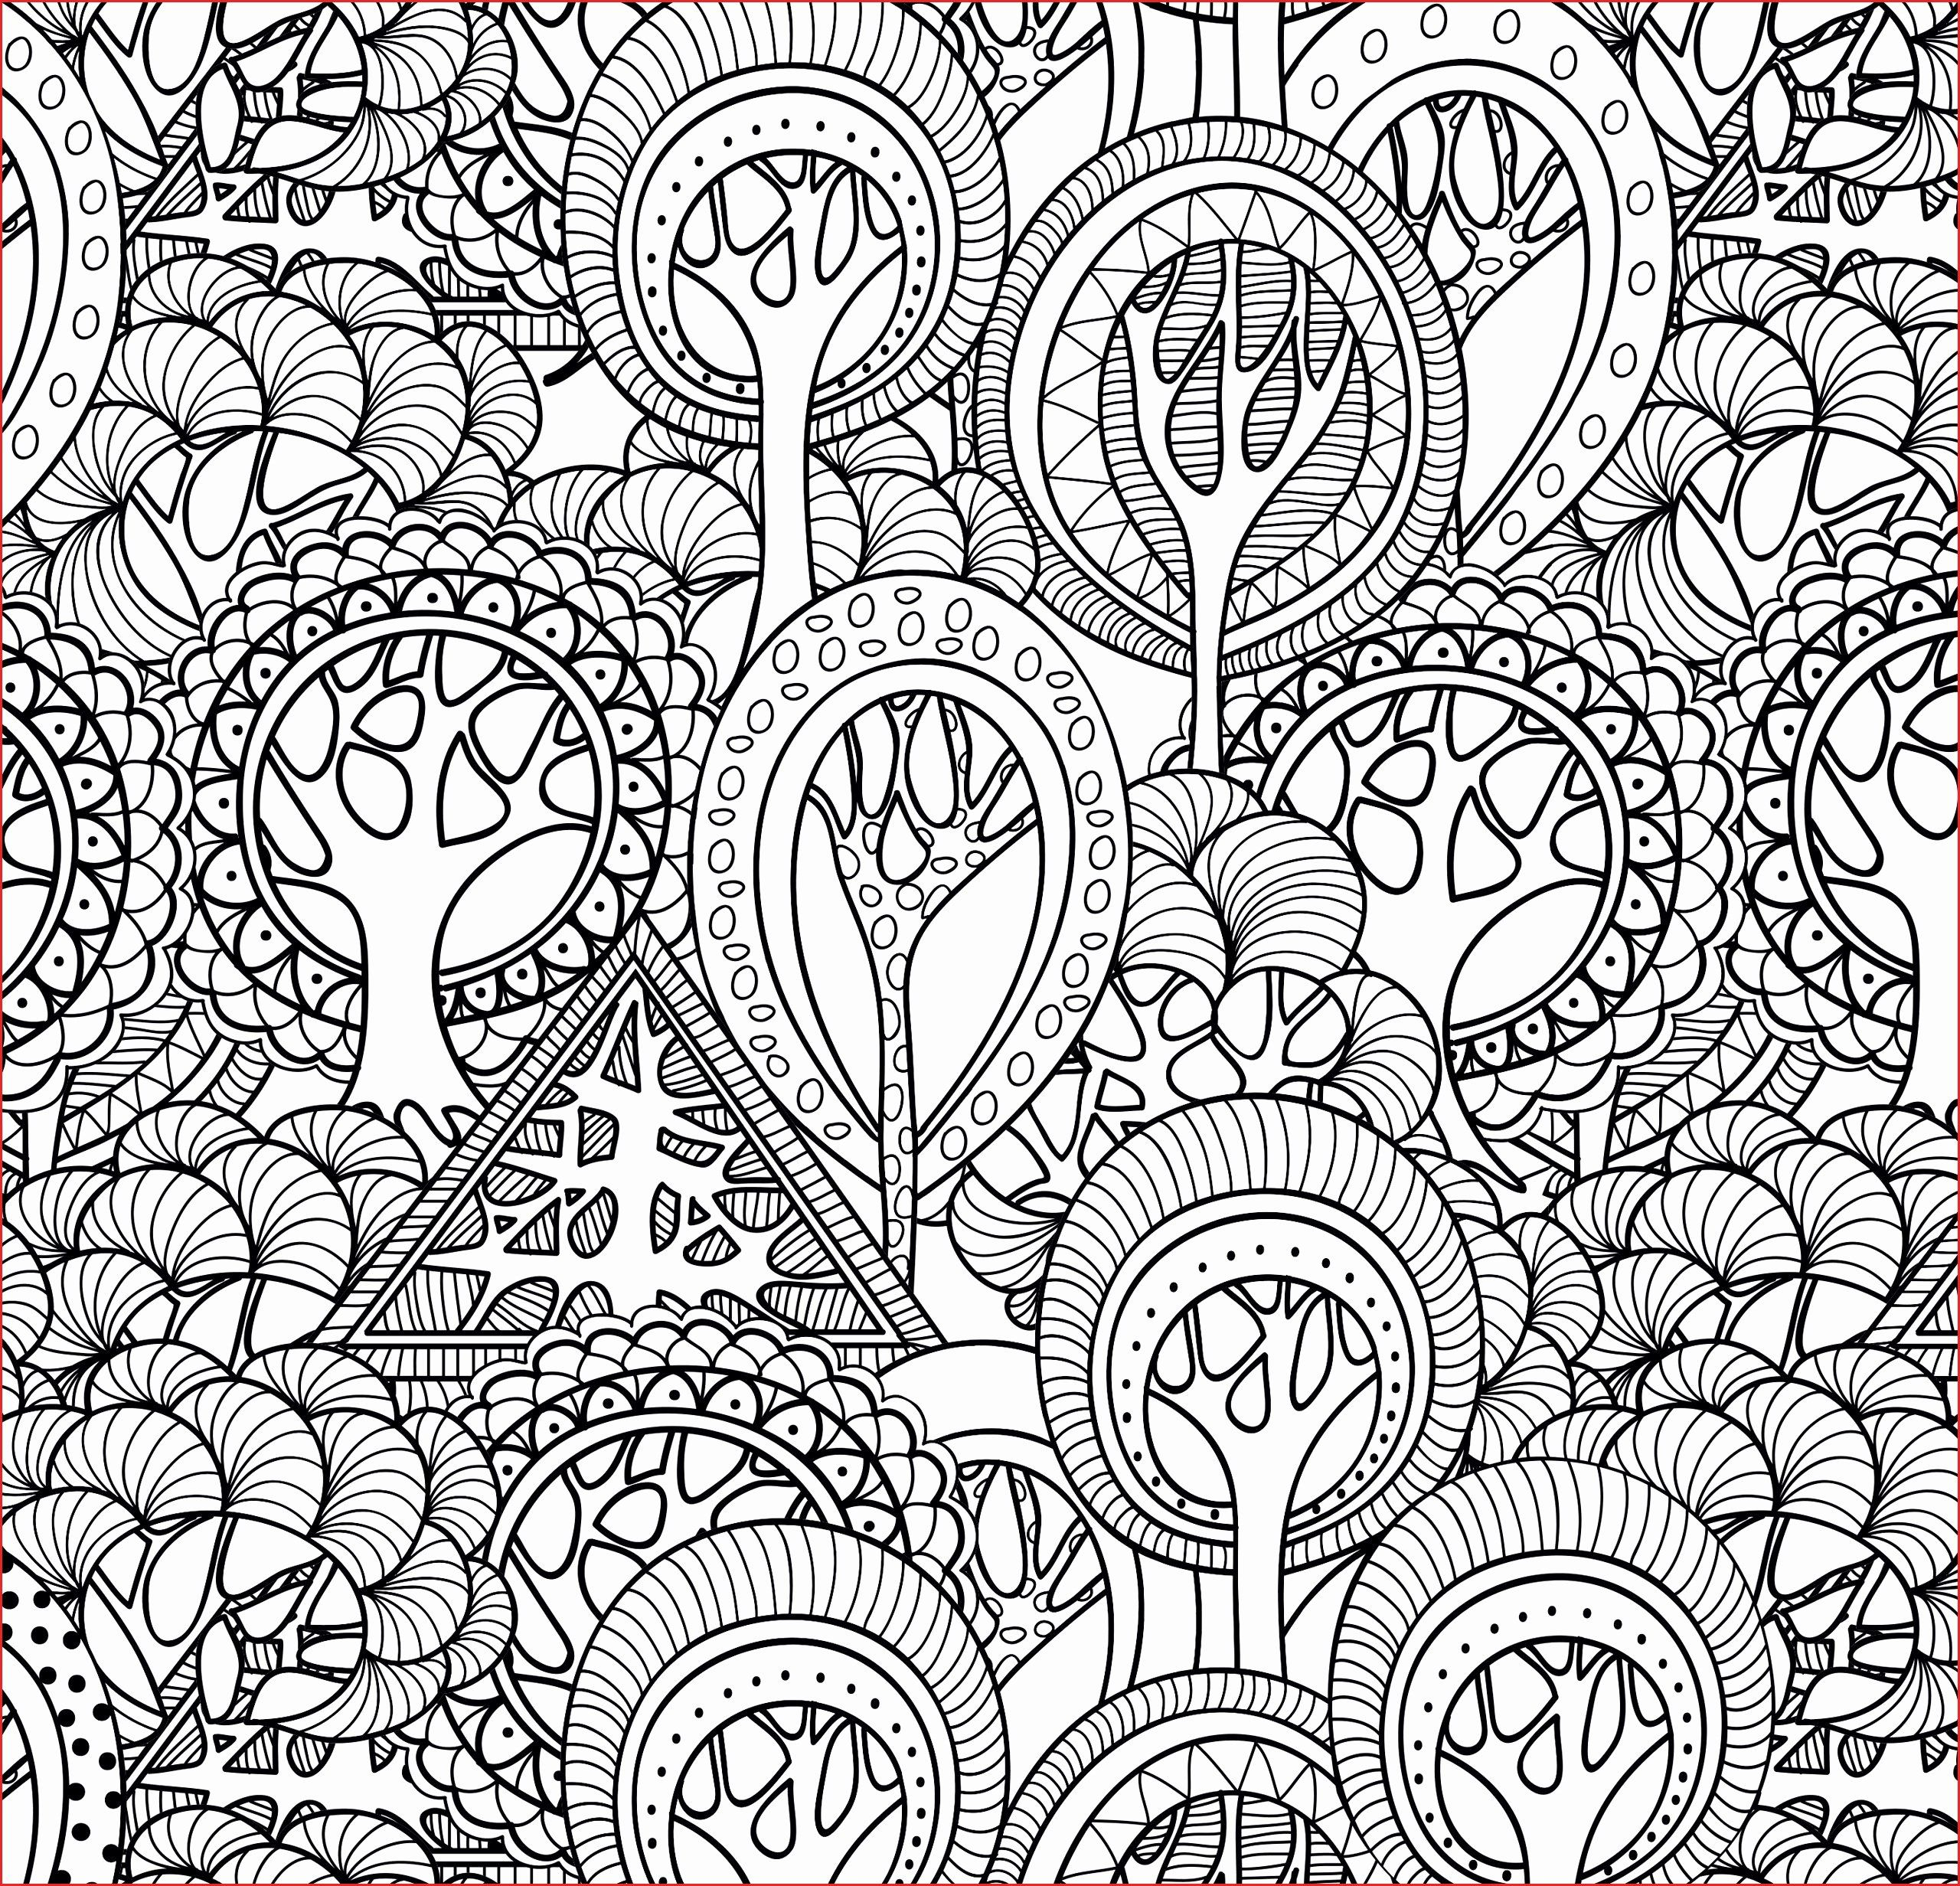 Flower Designs Coloring Pages Fresh Very Detailed Coloring Pages 7003 Color Pages For Kids Fr Cool Coloring Pages Designs Coloring Books Pattern Coloring Pages